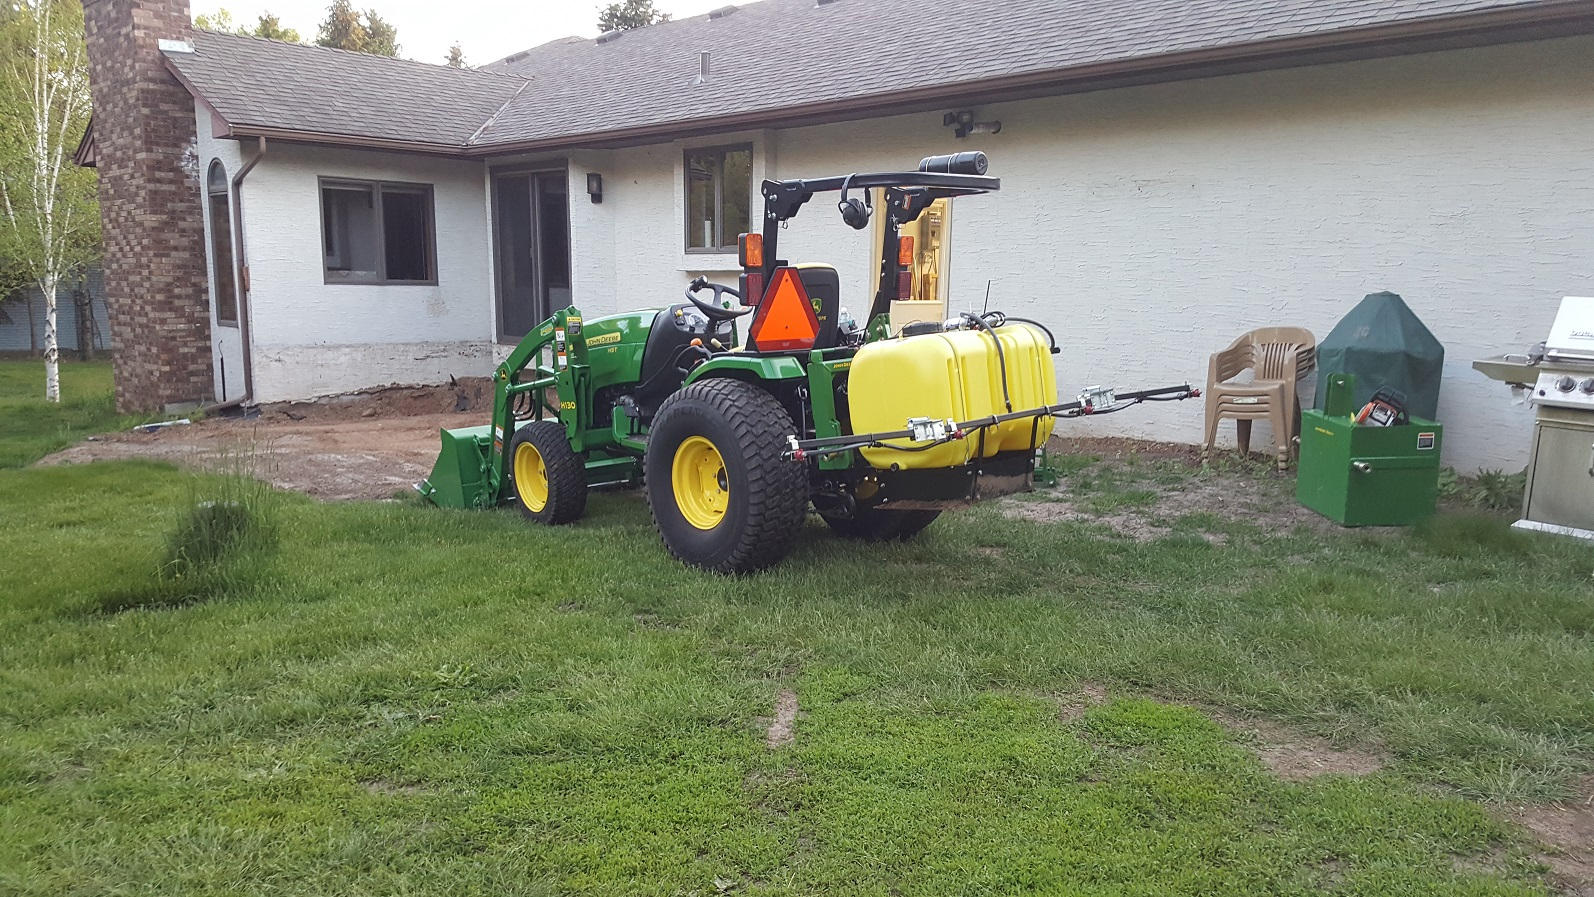 2032 sprayer 001.jpg